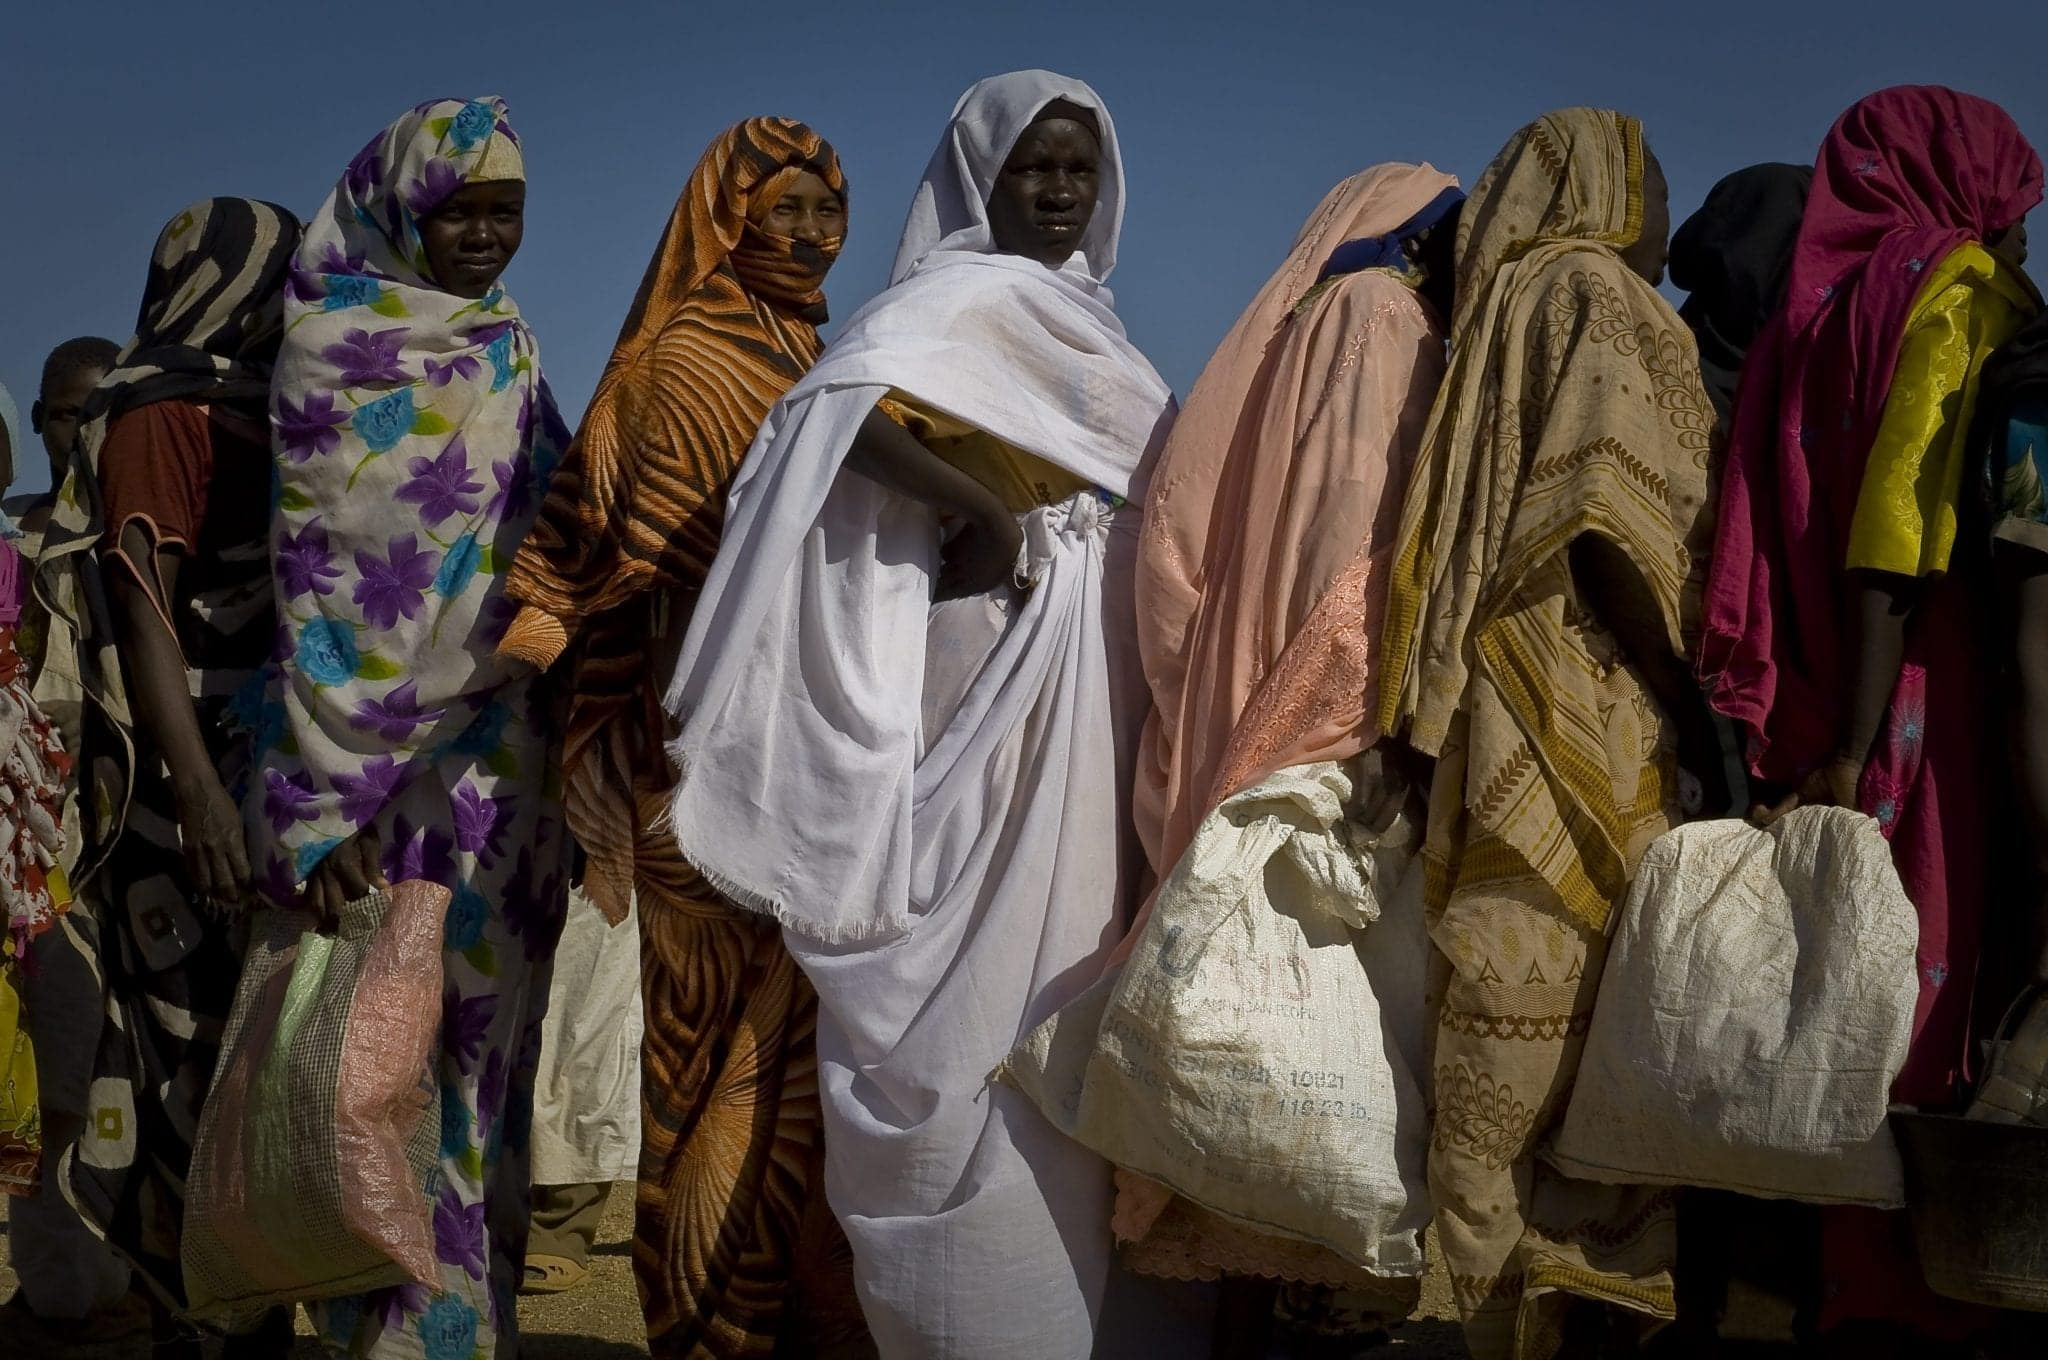 Darfurians refugees in Eastern Chad